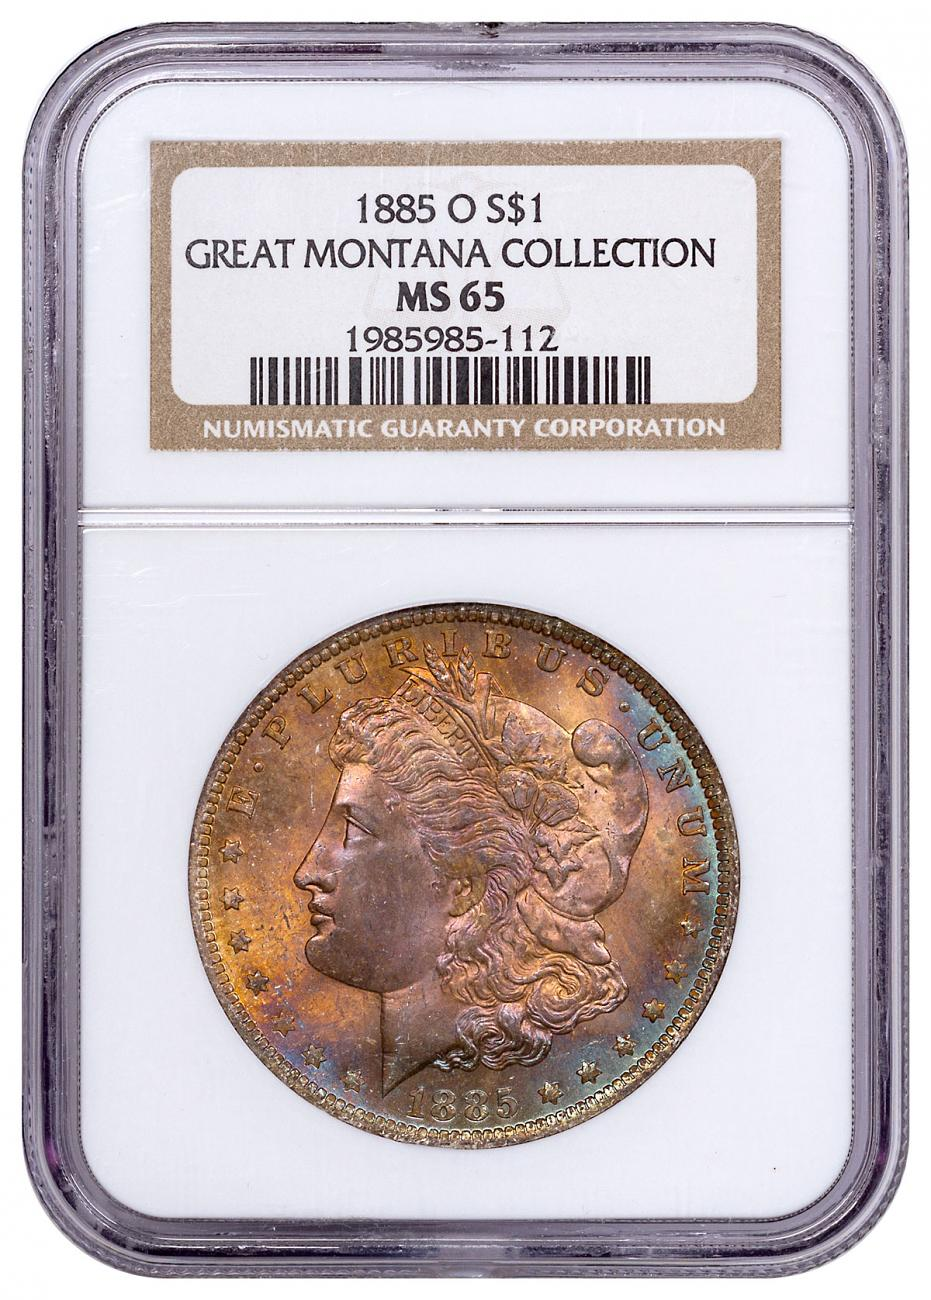 1885-O Silver Morgan Dollar From the Great Montana Collection NGC MS65 Toned CPCR 5112